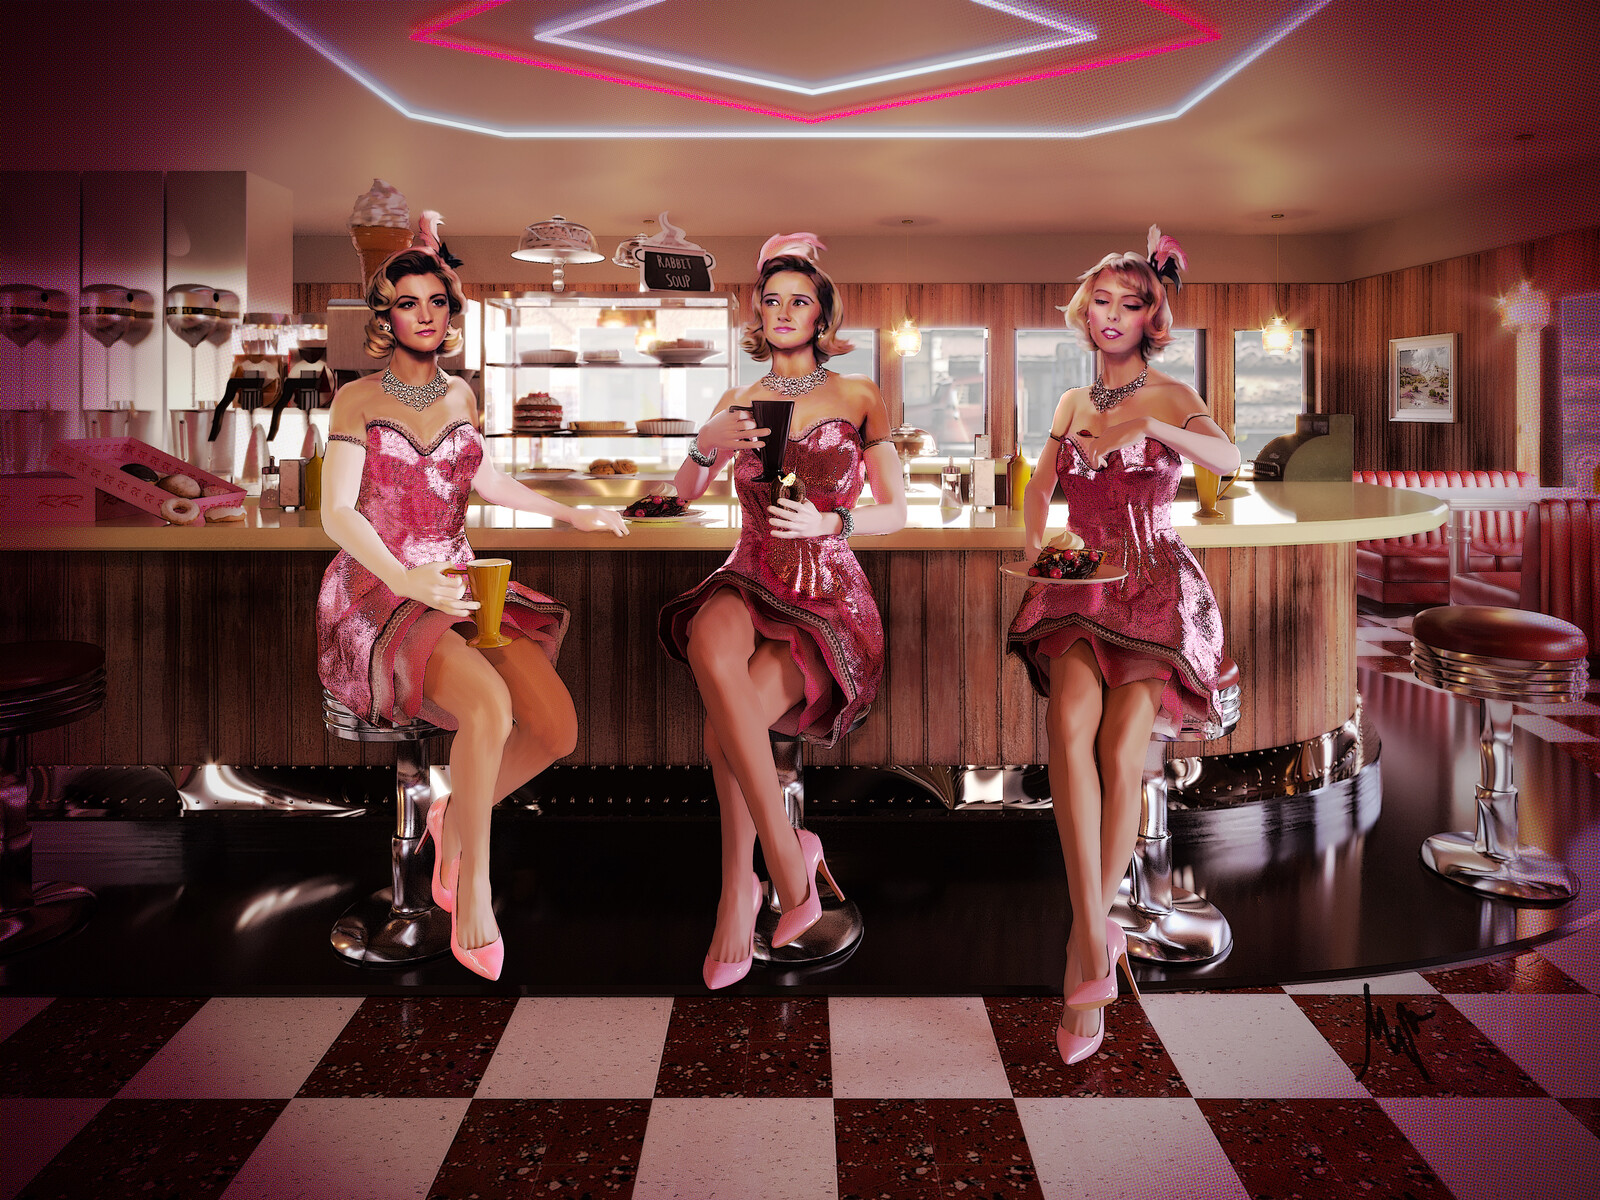 The Pink Ladies at the Double R